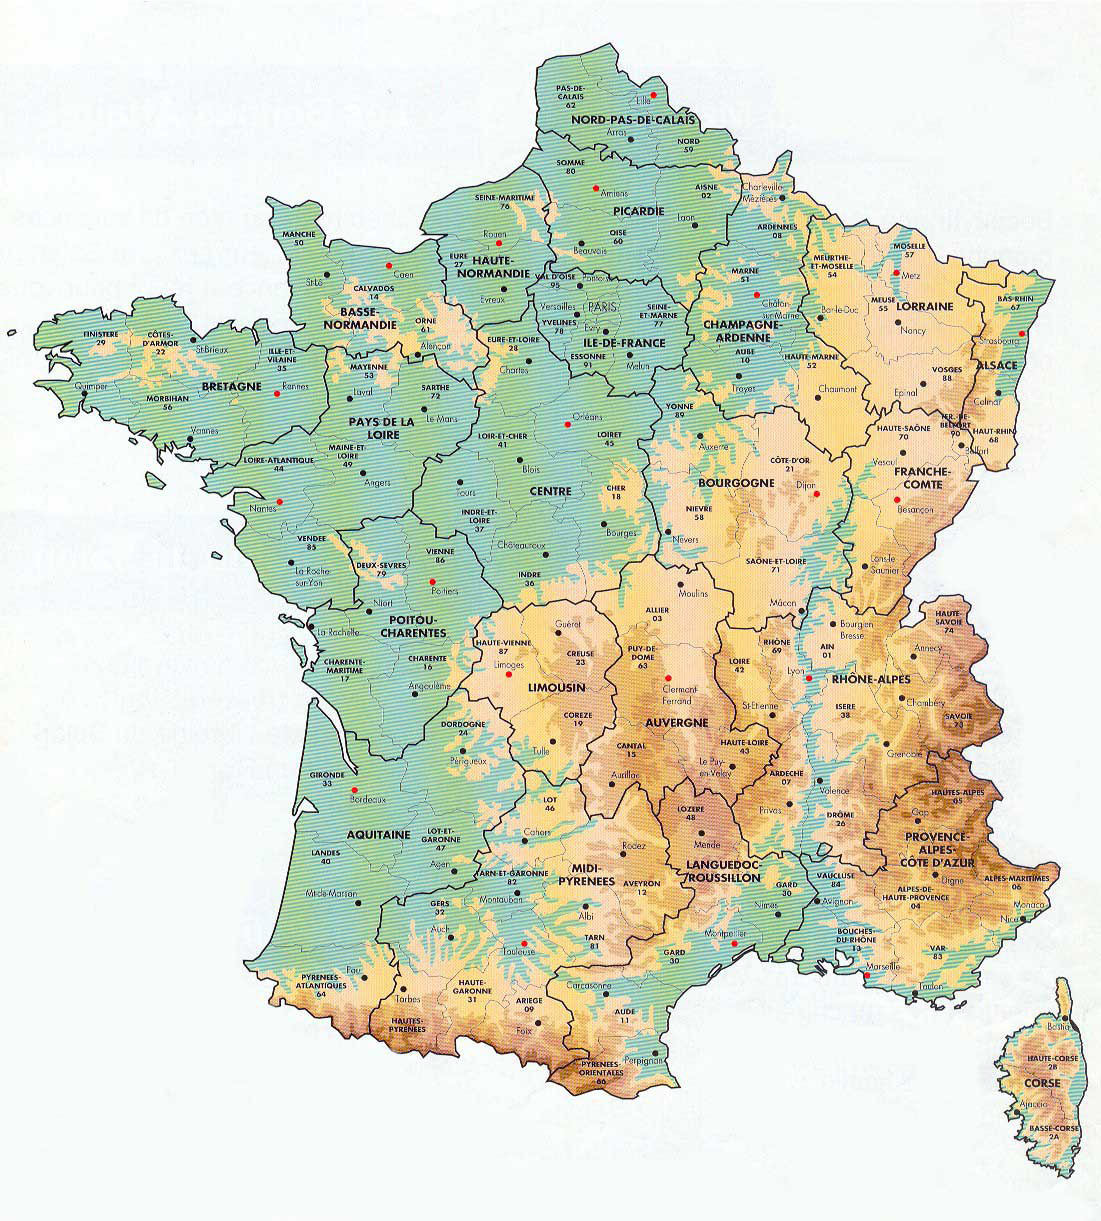 Map Of Europe France.Large Elevation Map Of France With Administrative Divisions France